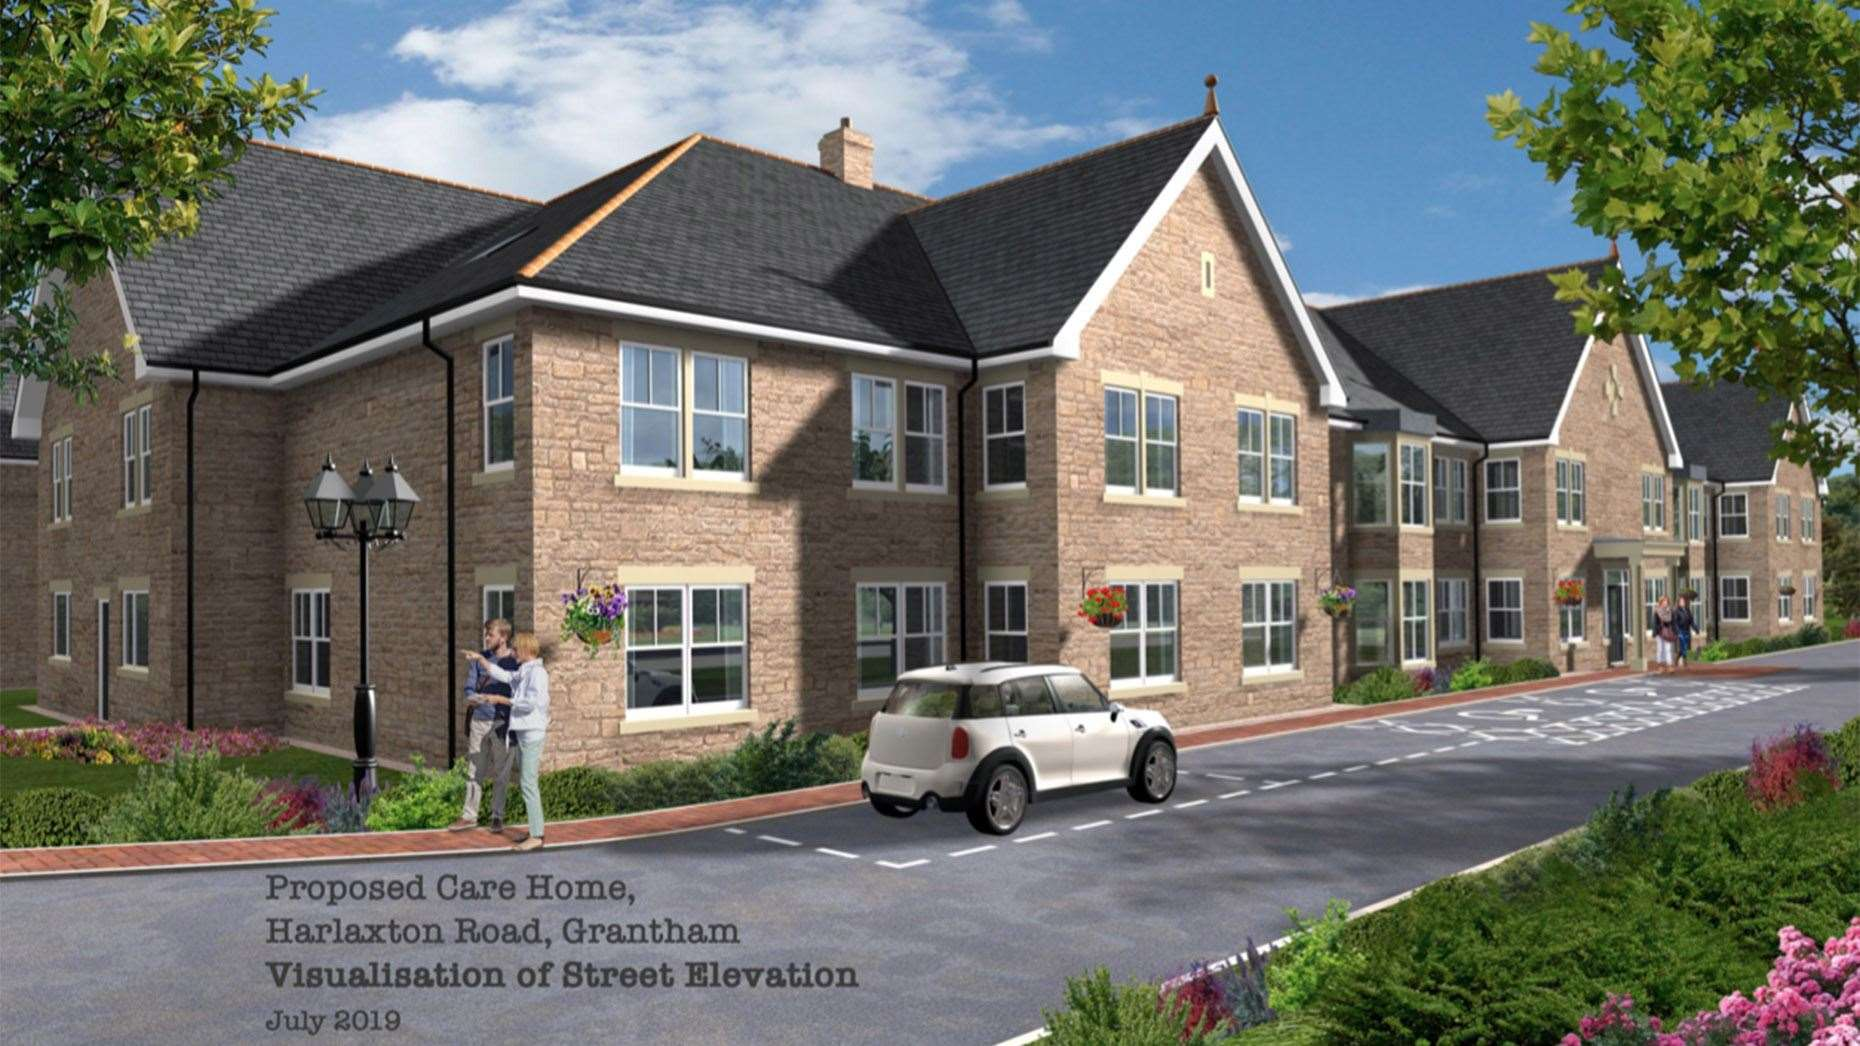 How the care home will look if approved for the site of the former magistrates court in Grantham. (23252400)